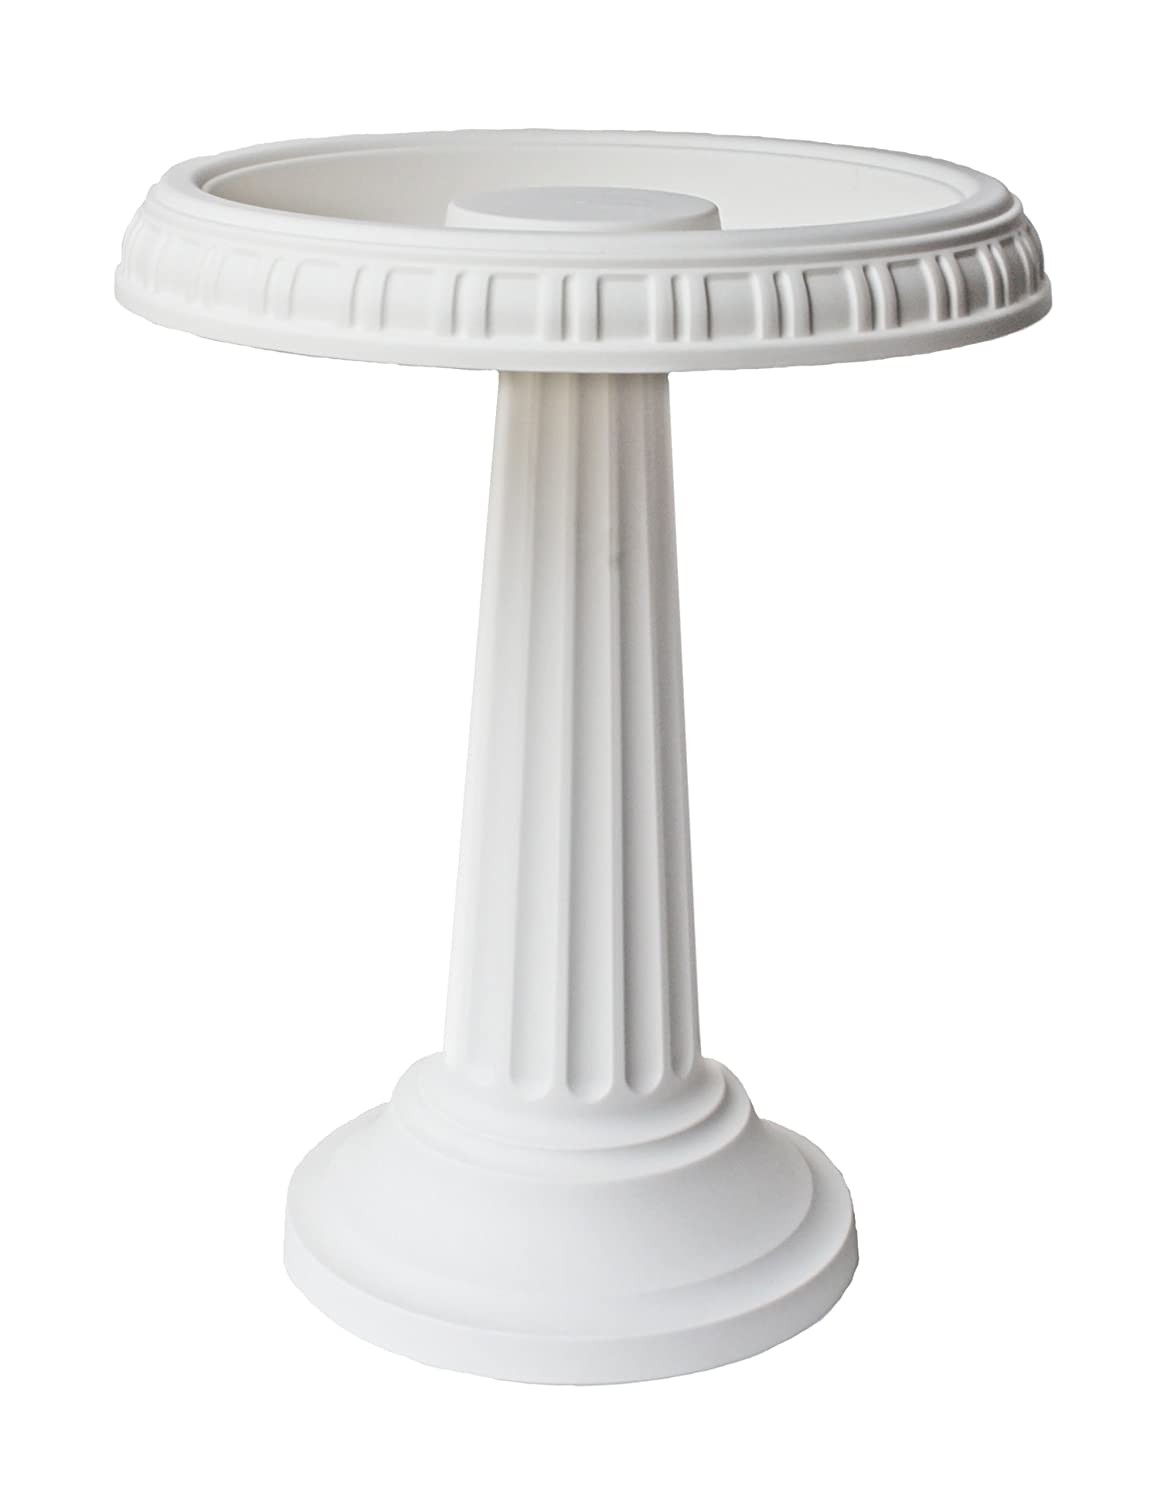 Bloem BB2-10 Grecian Bird Bath with Pedestal, White